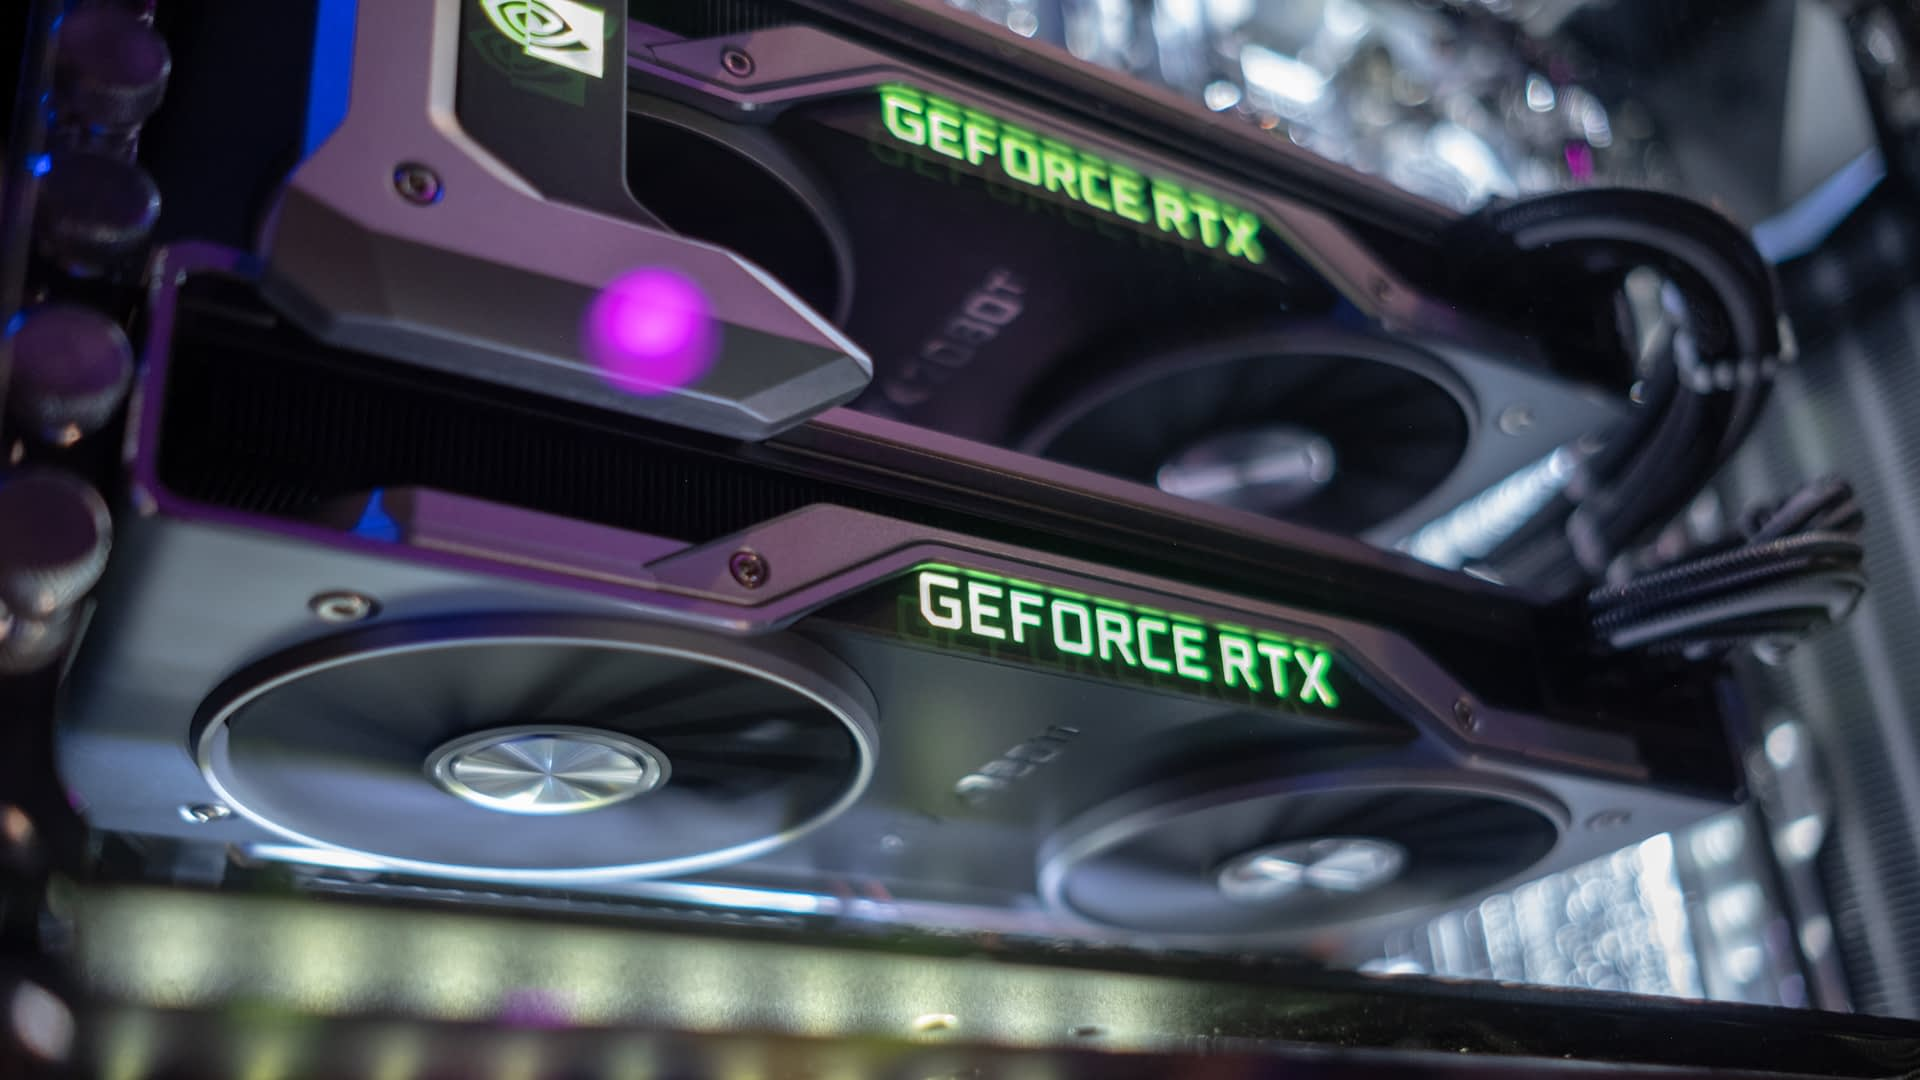 When to buy a new GPU